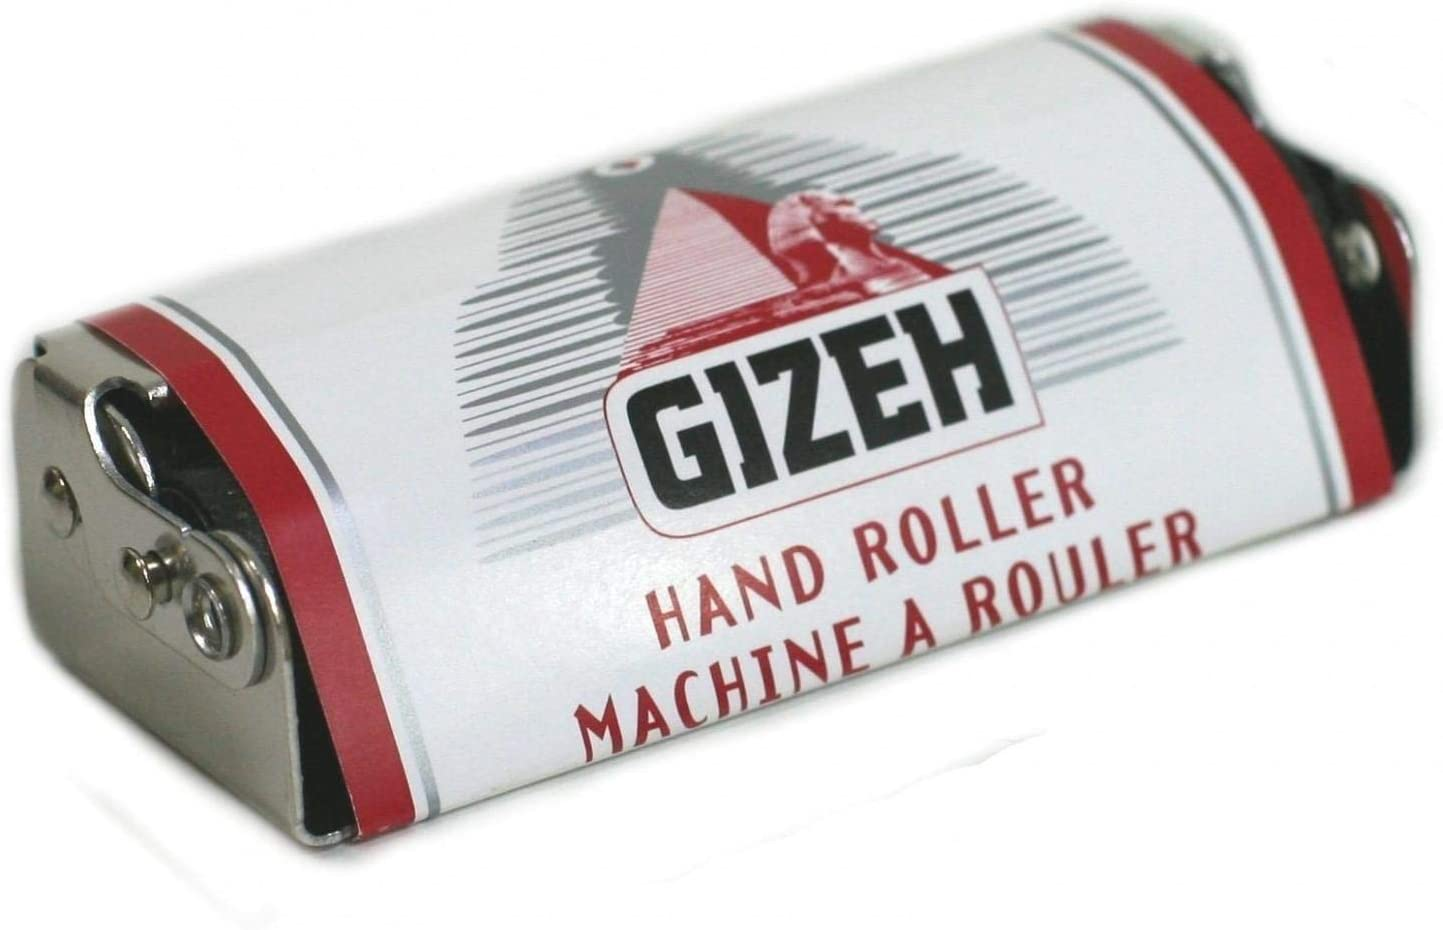 Gizeh cigarette rolling machine how much is it for a carton of cigarettes